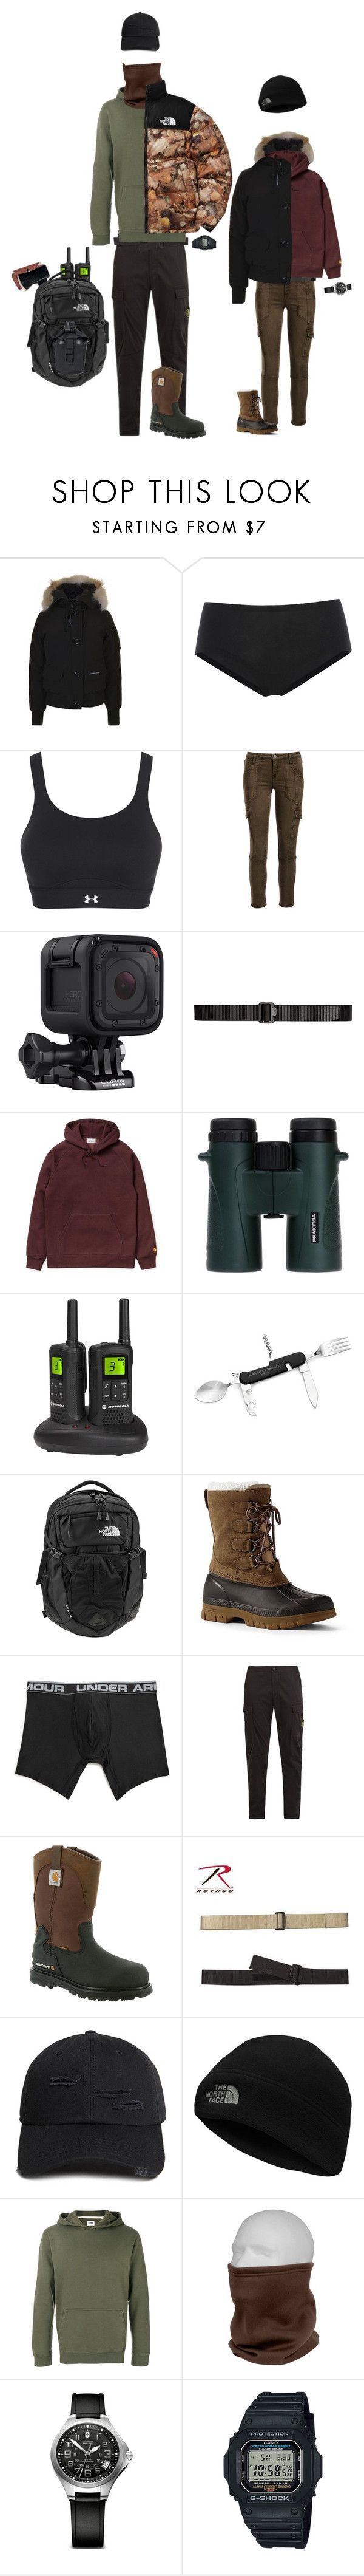 """""""Finding Bigfoot"""" by kevin-whitcanack on Polyvore featuring Canada Goose, Wolford, Under Armour, Joie, Rothco, GoPro, 5.11 Tactical, Carhartt, Motorola and Celebrate Shop"""